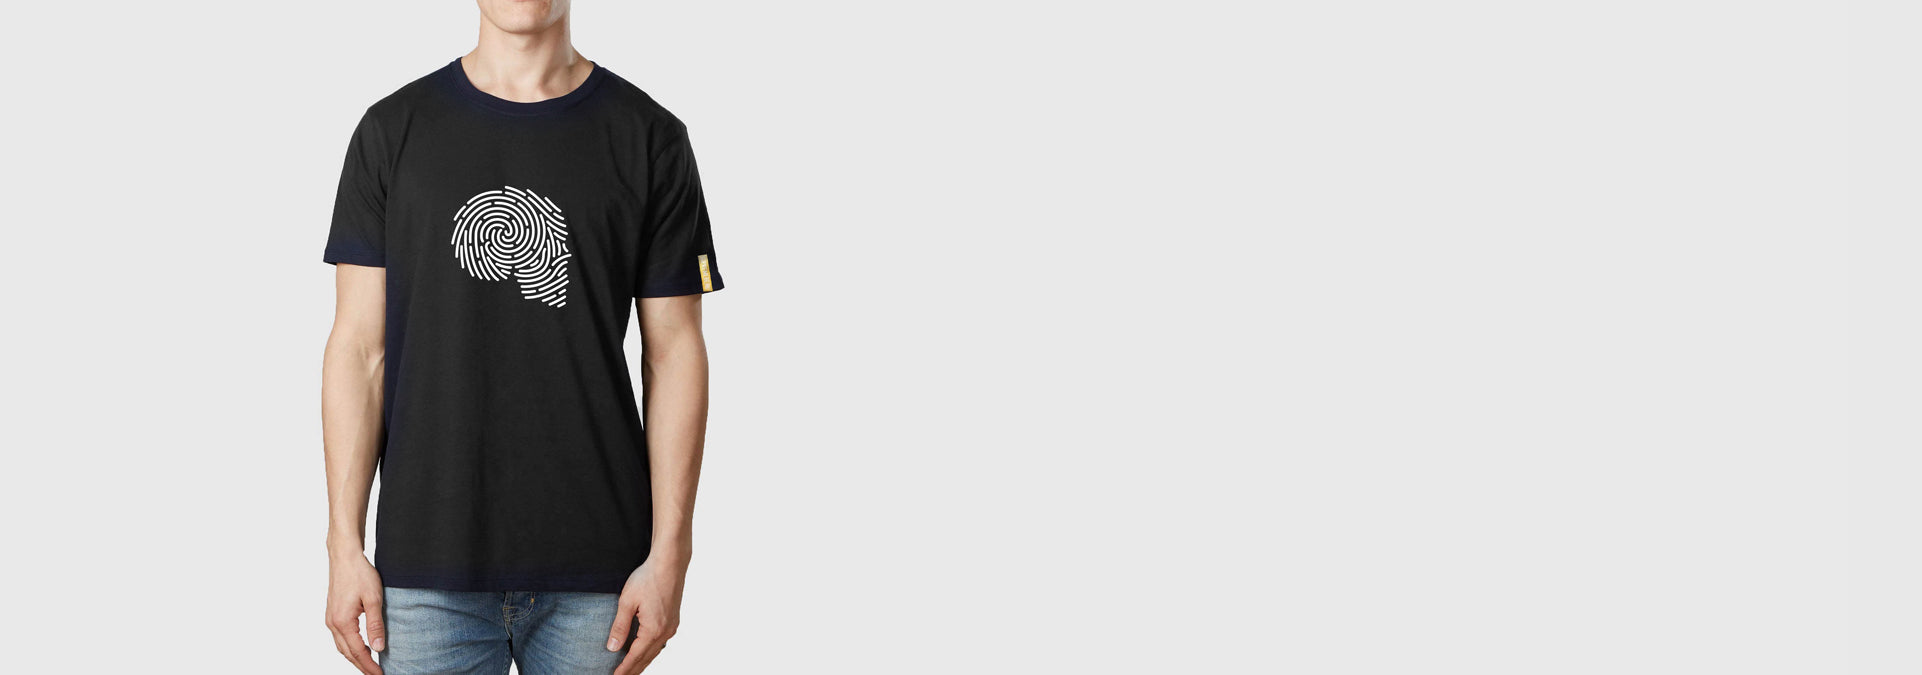 Single Thumb T-Shirt Black